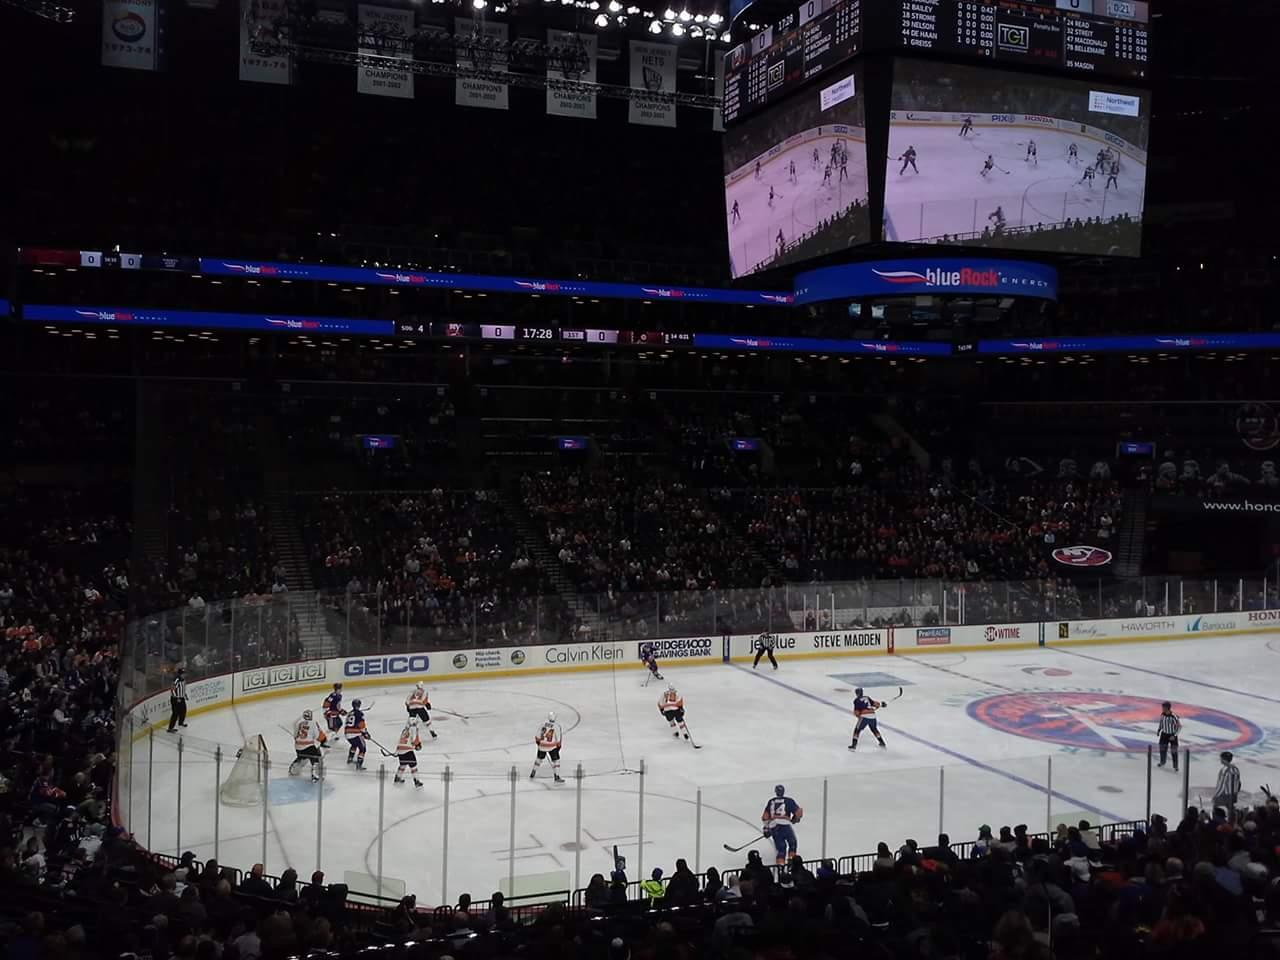 Barclays Center Section 111 Row 4 Seat 1